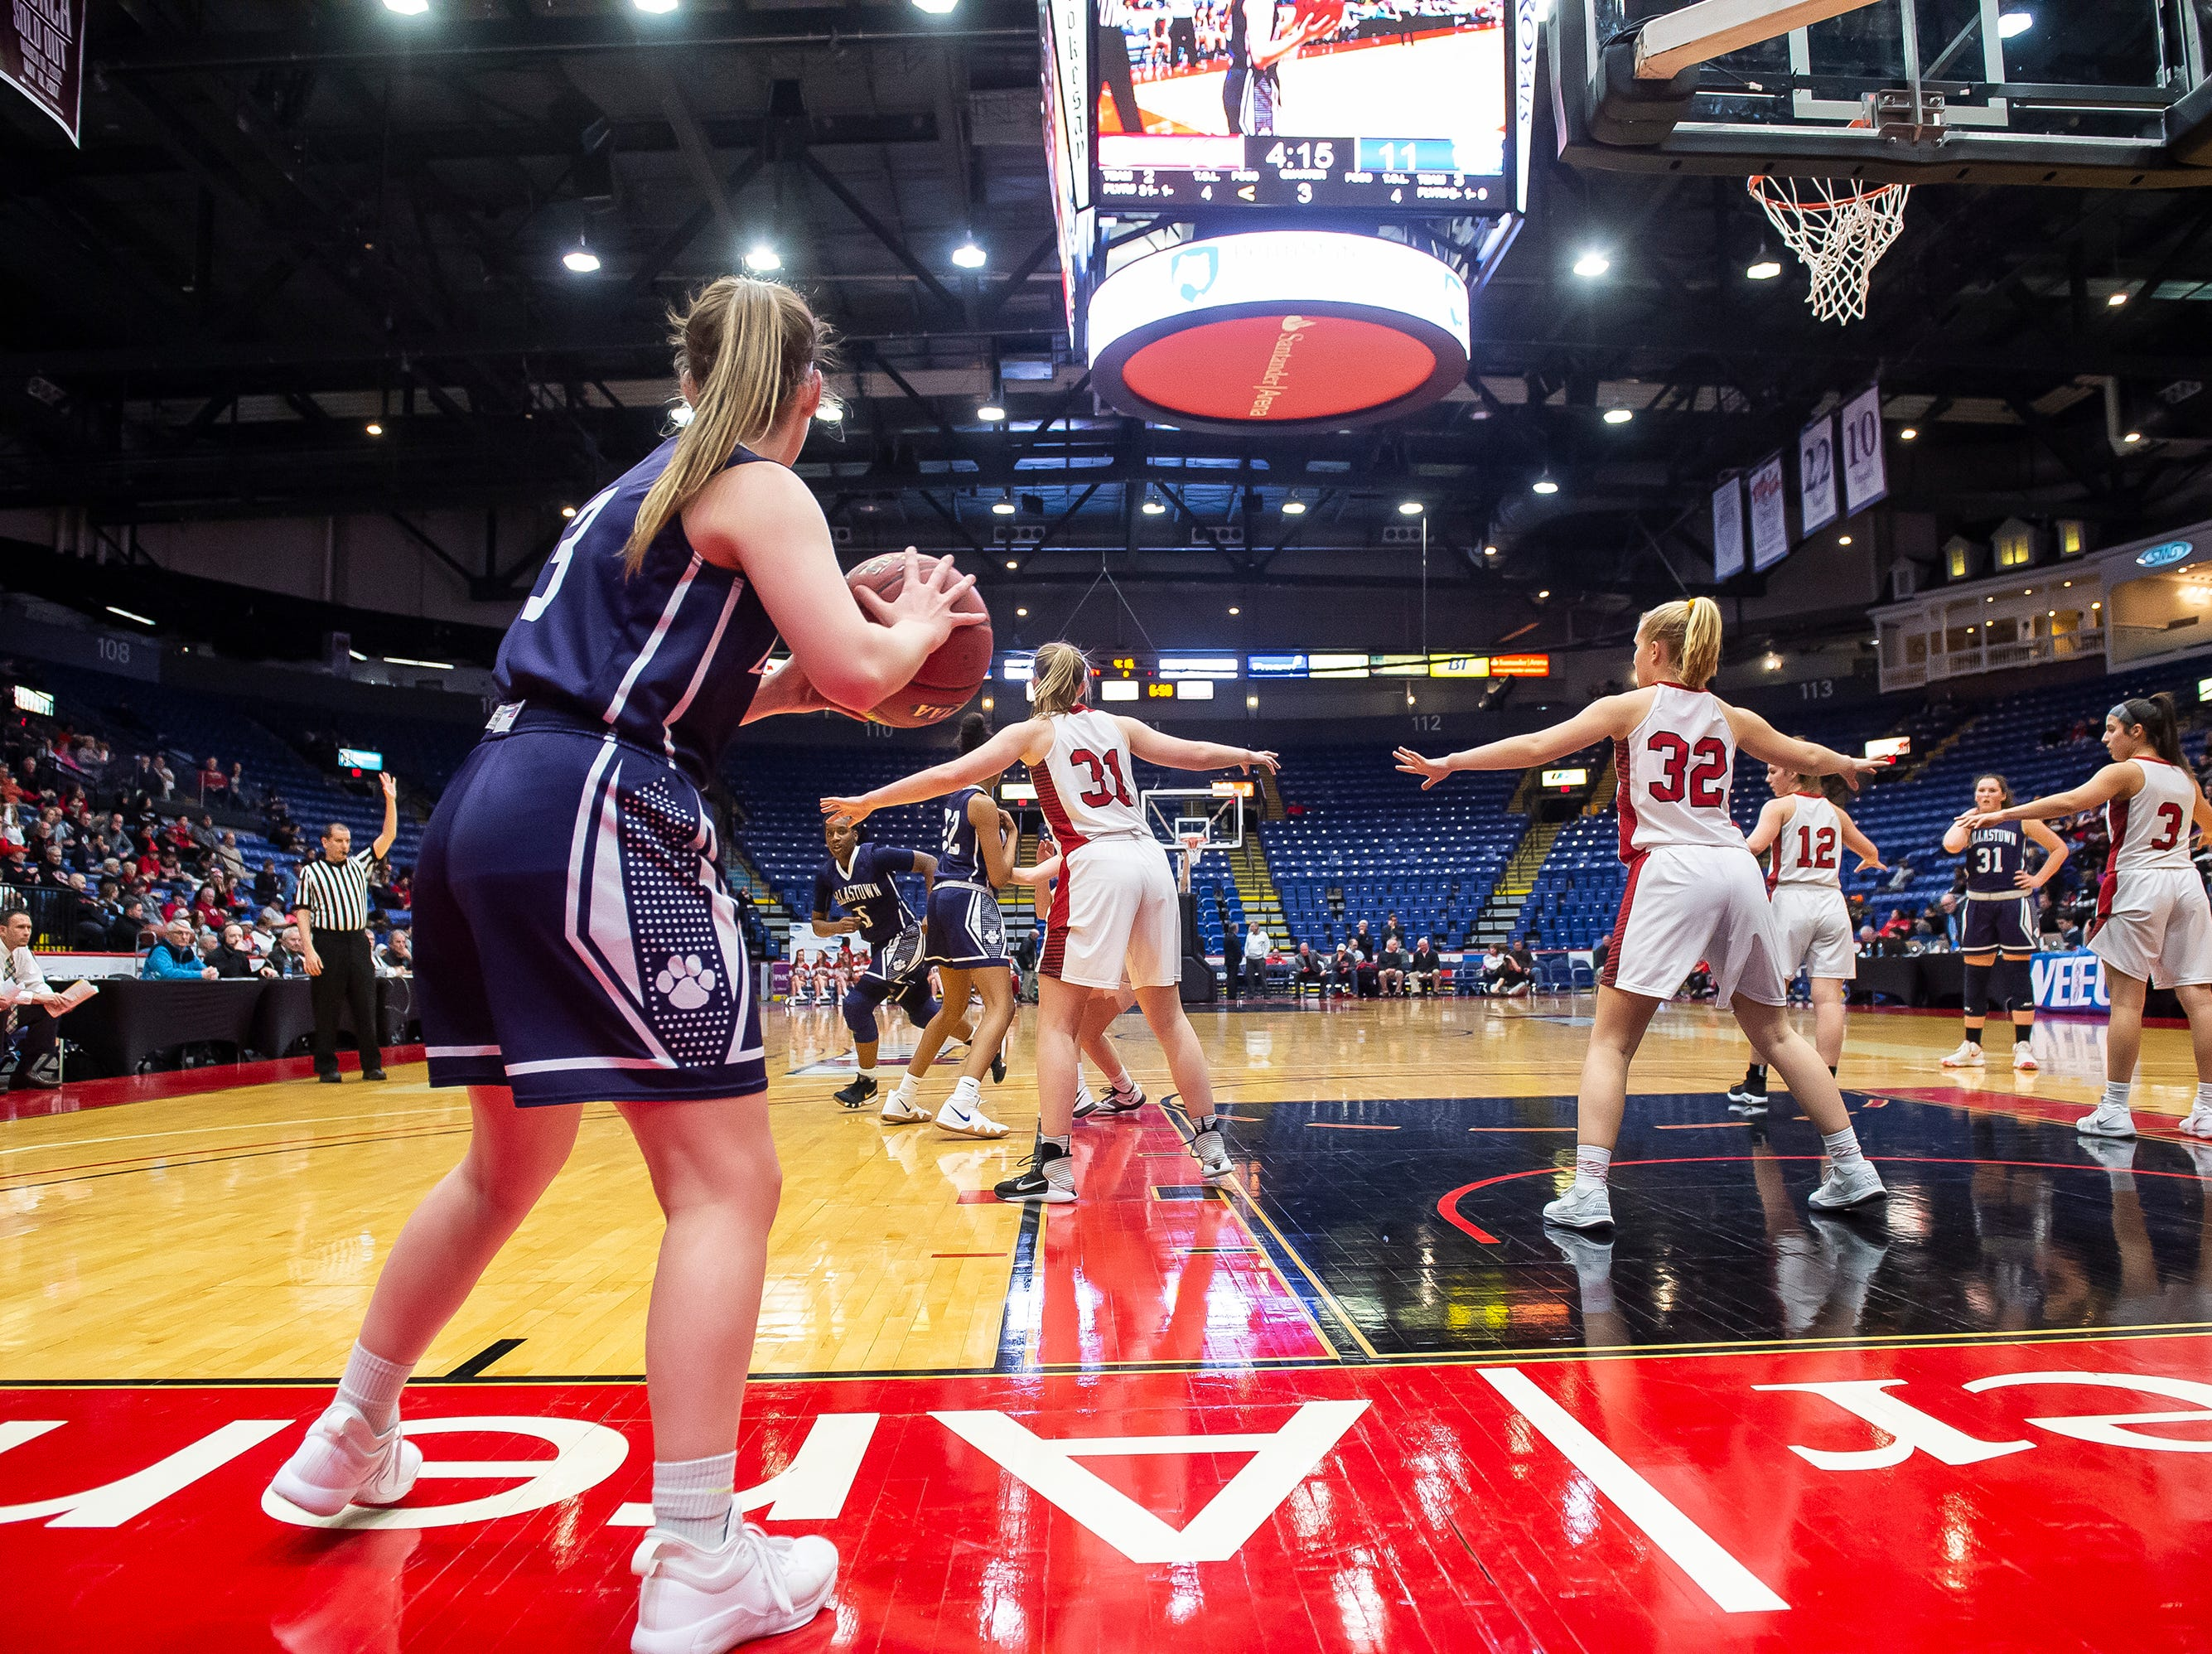 Dallastown's Claire Teyral looks to inbound the ball during the District 3 6A girls championship game against Cumberland Valley at the Santander Arena in Reading, Pa., Friday, March 1, 2019. Dallastown fell 33-27.